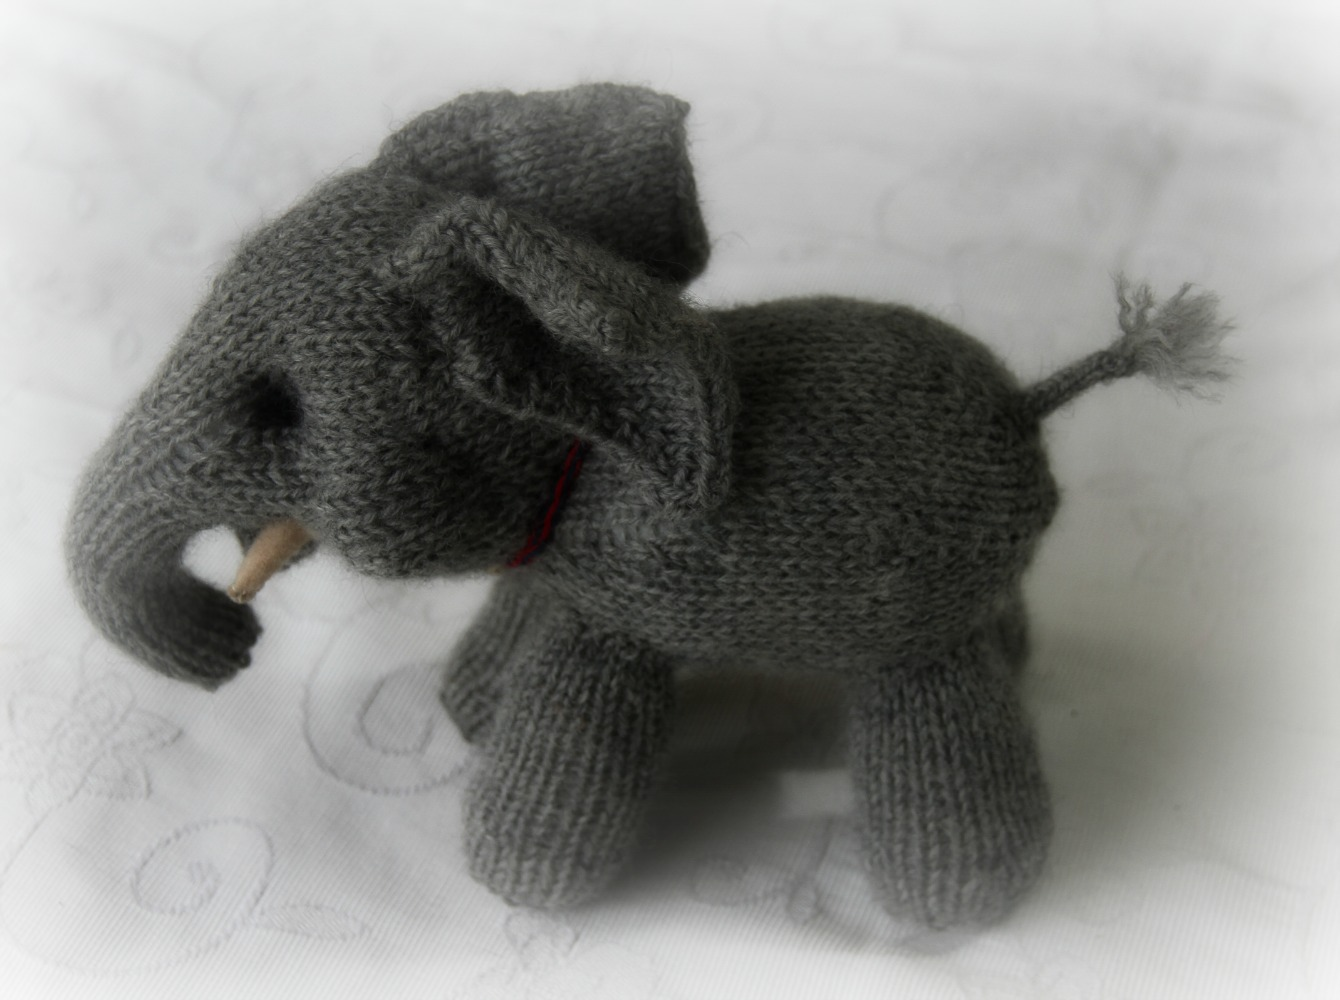 Susie McMahon Dolls: Recent Work and a Knitted Elephant Obssession